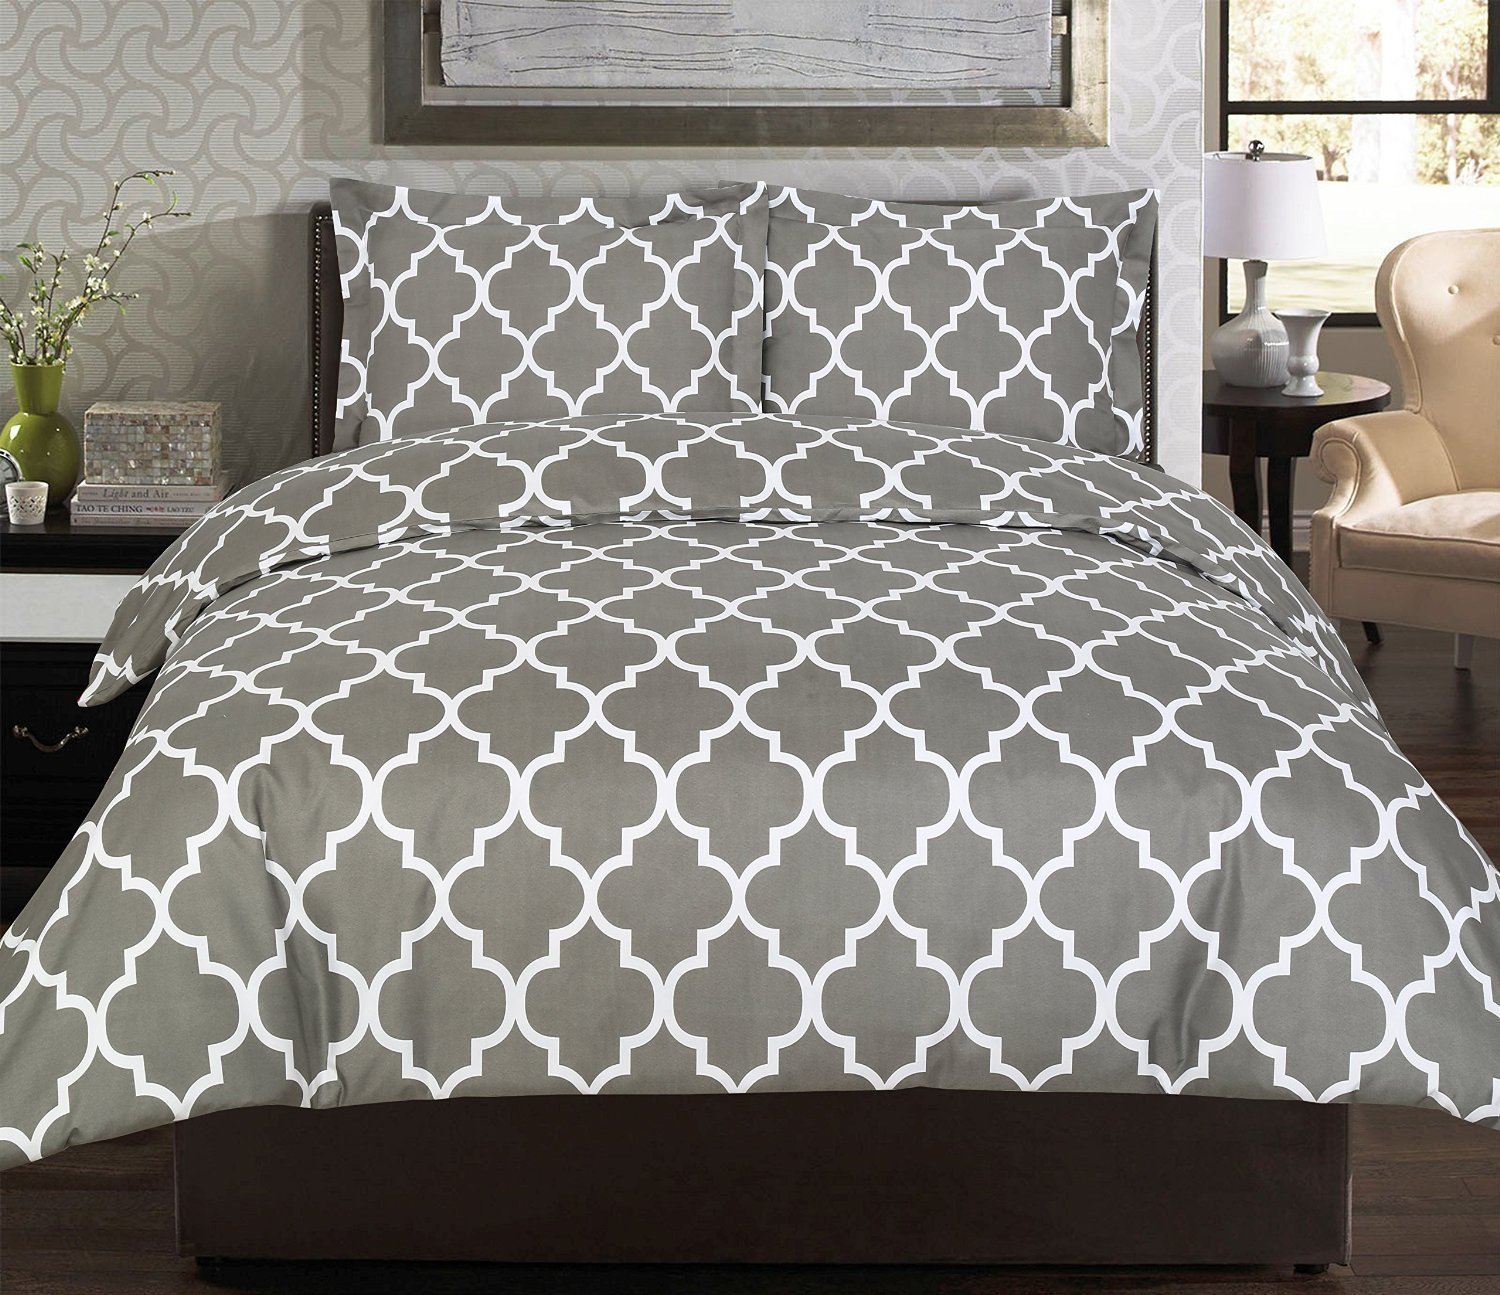 3 Piece Duvet Cover Set Queen, Grey